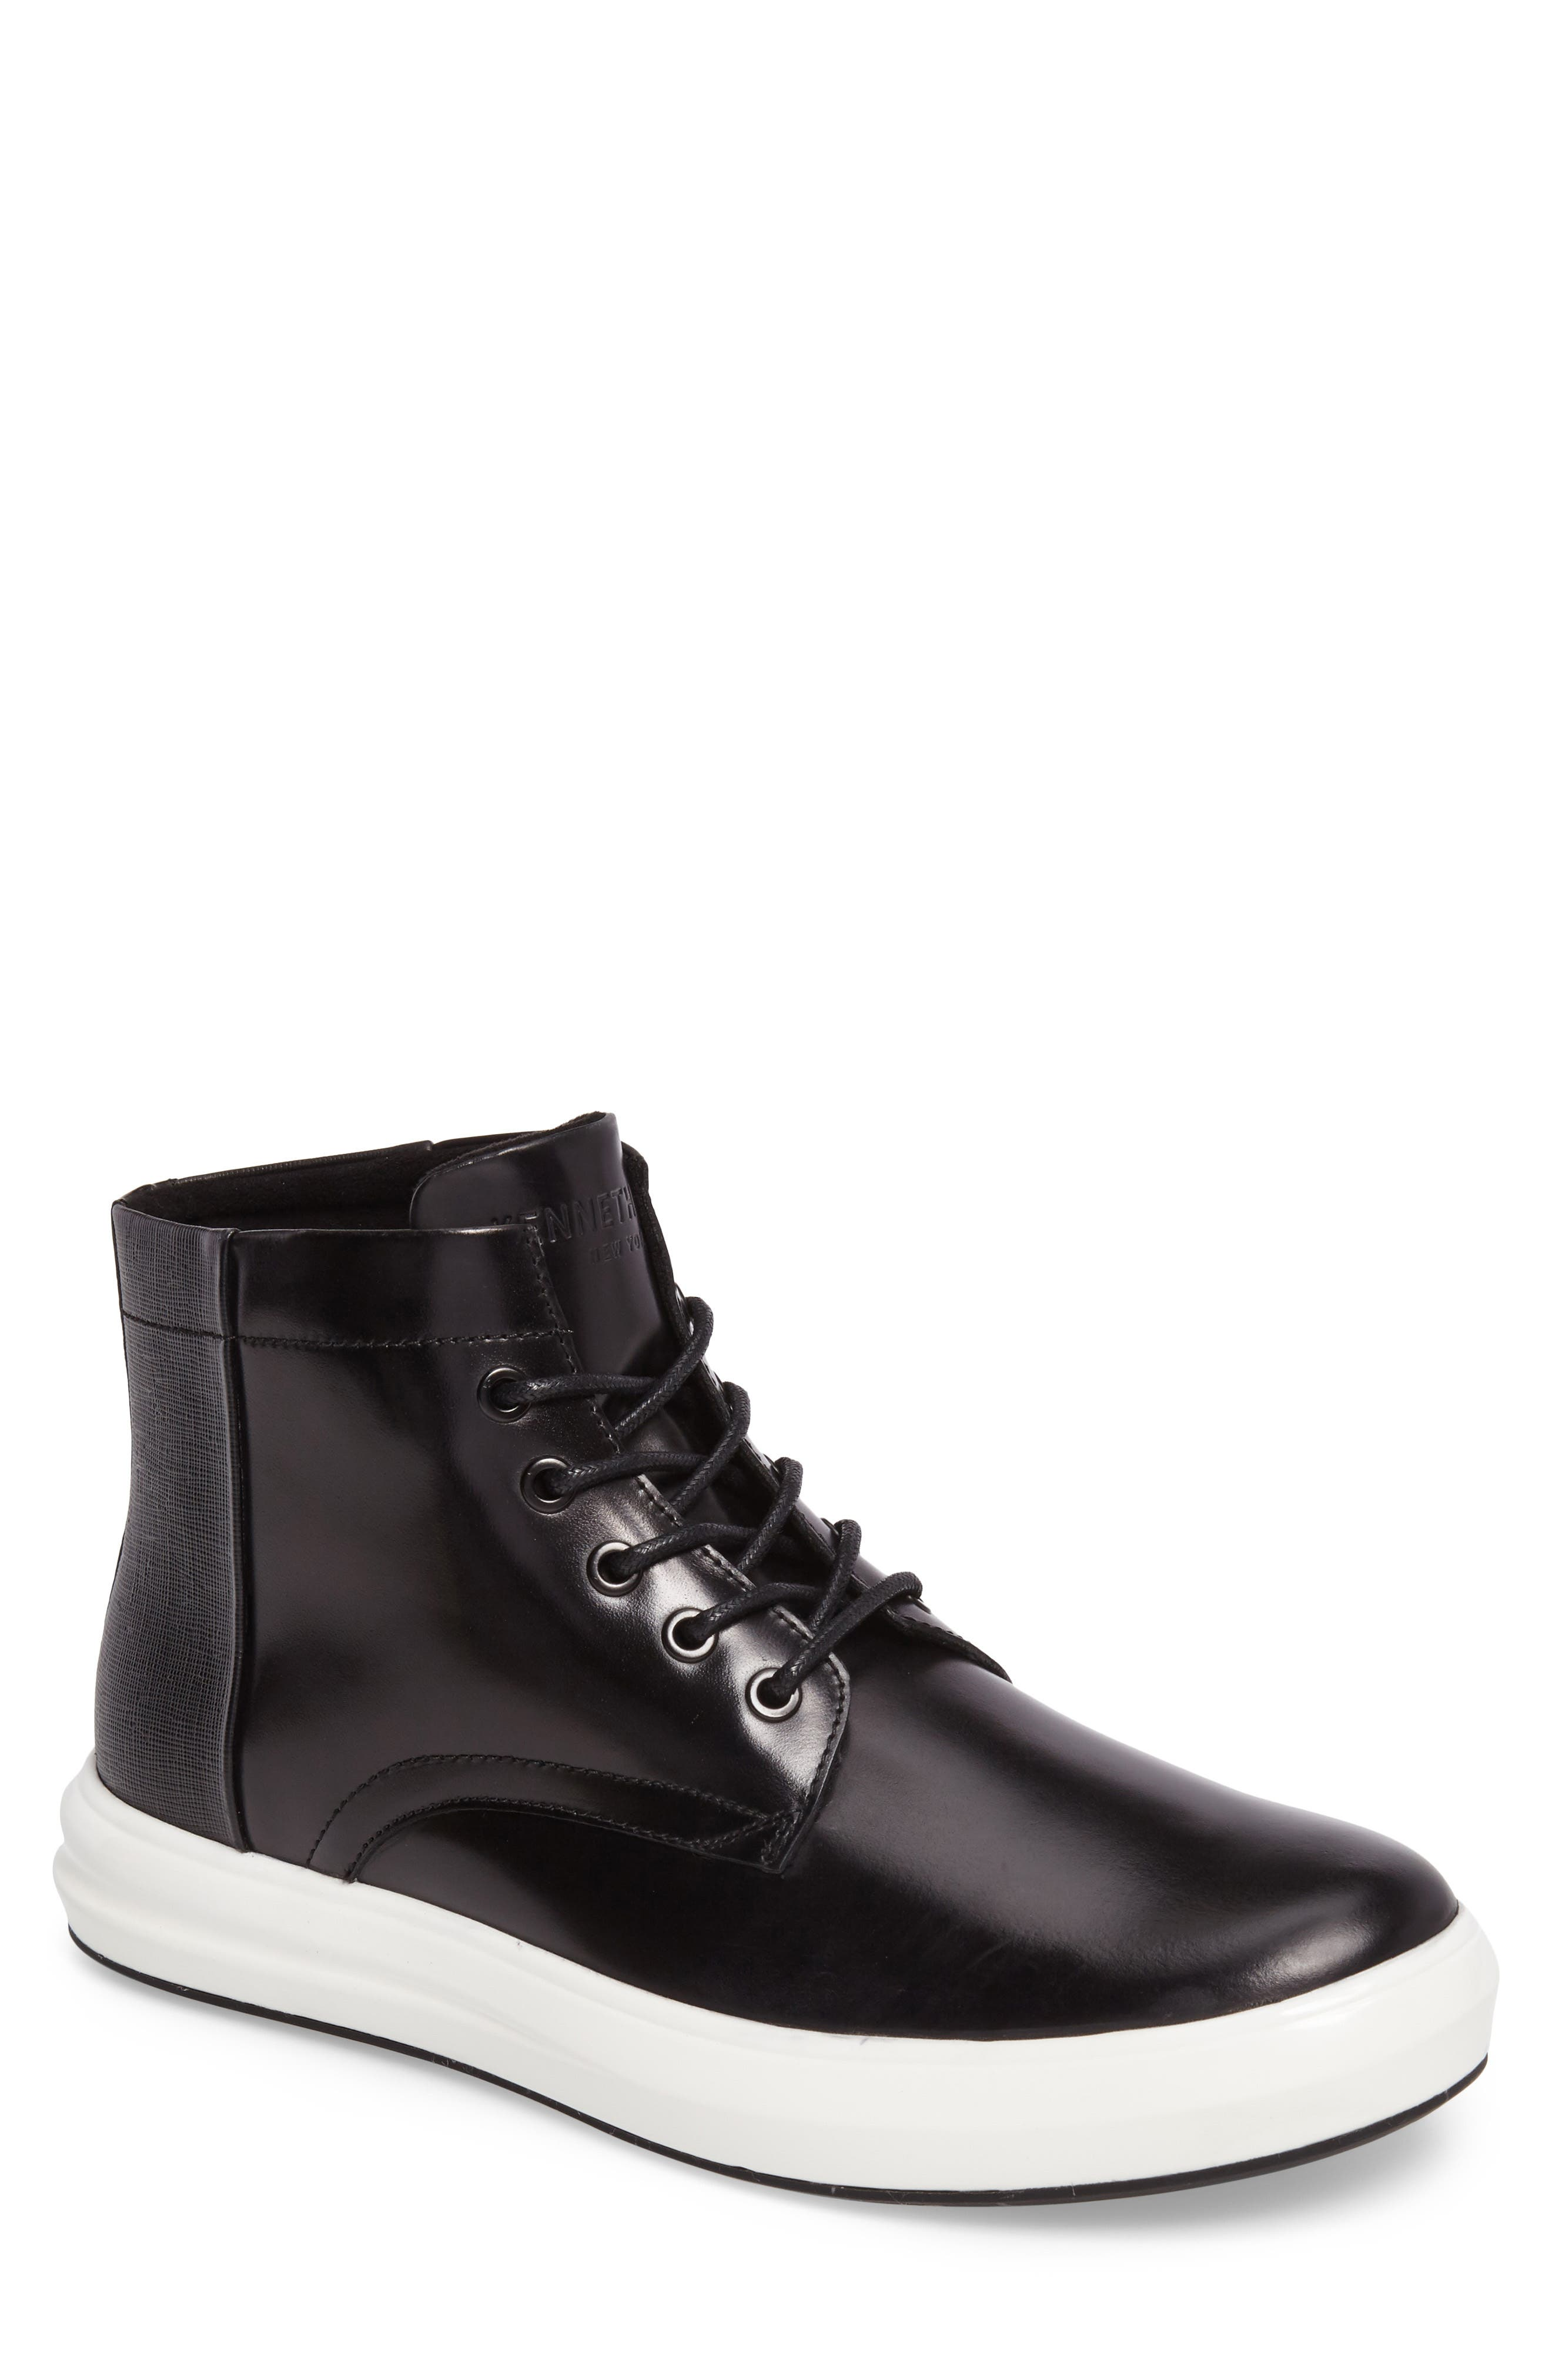 Main Image - Kenneth Cole New York High Top Sneaker (Men)